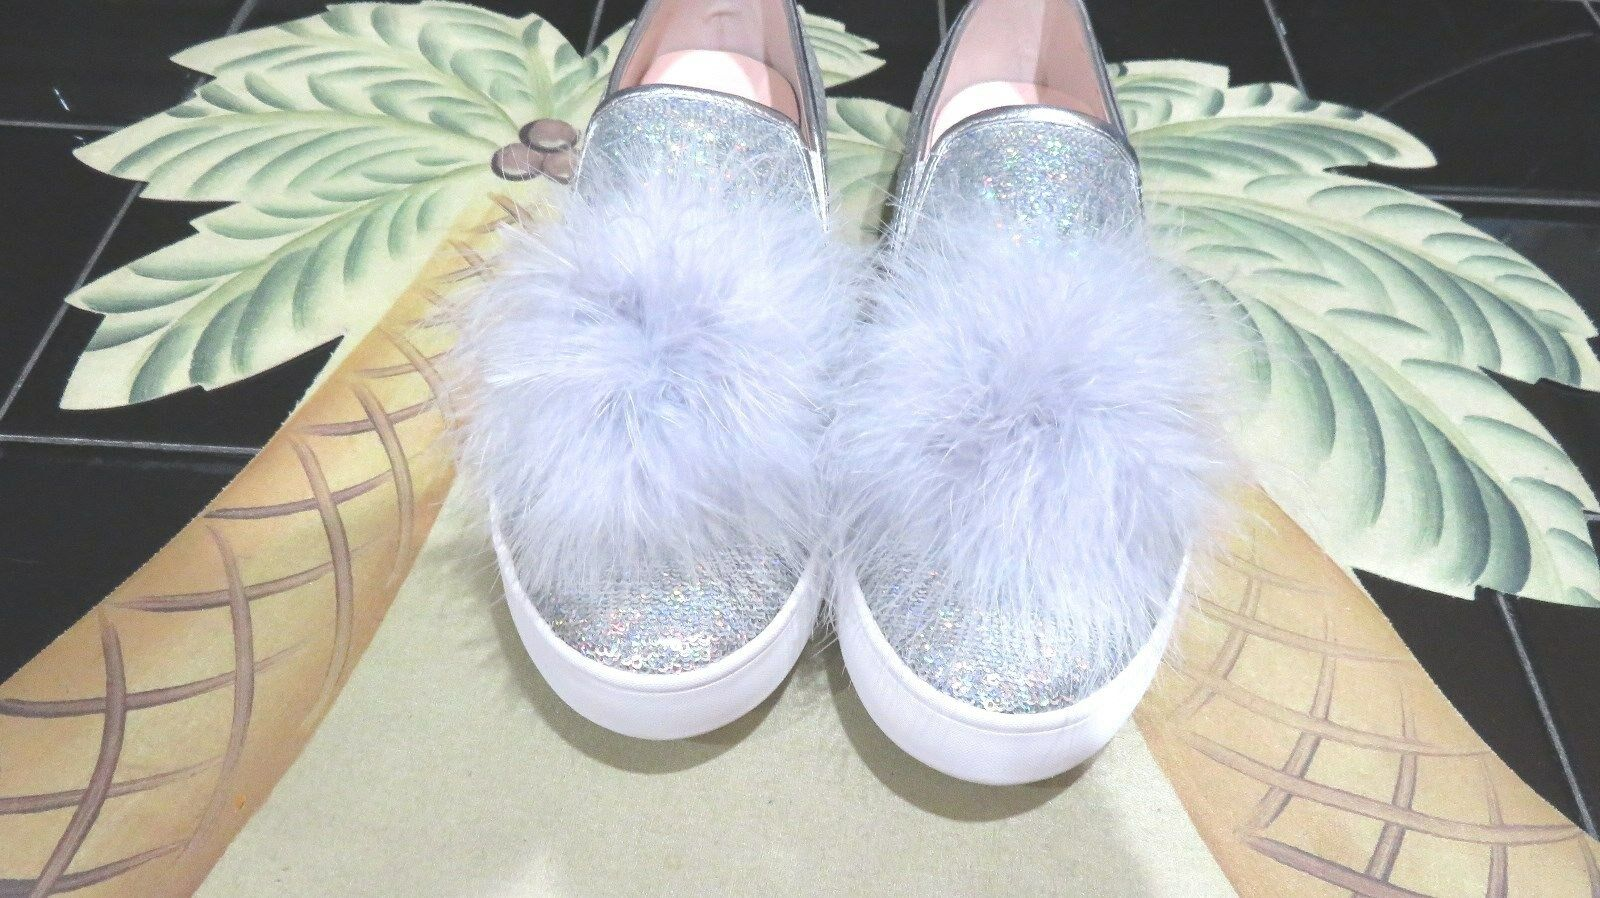 fb5befd0c131 ... UPC 888445959035 product image for Kate Spade Latisa Slip On Sneakers  Shoes Silver Sequin Size 8